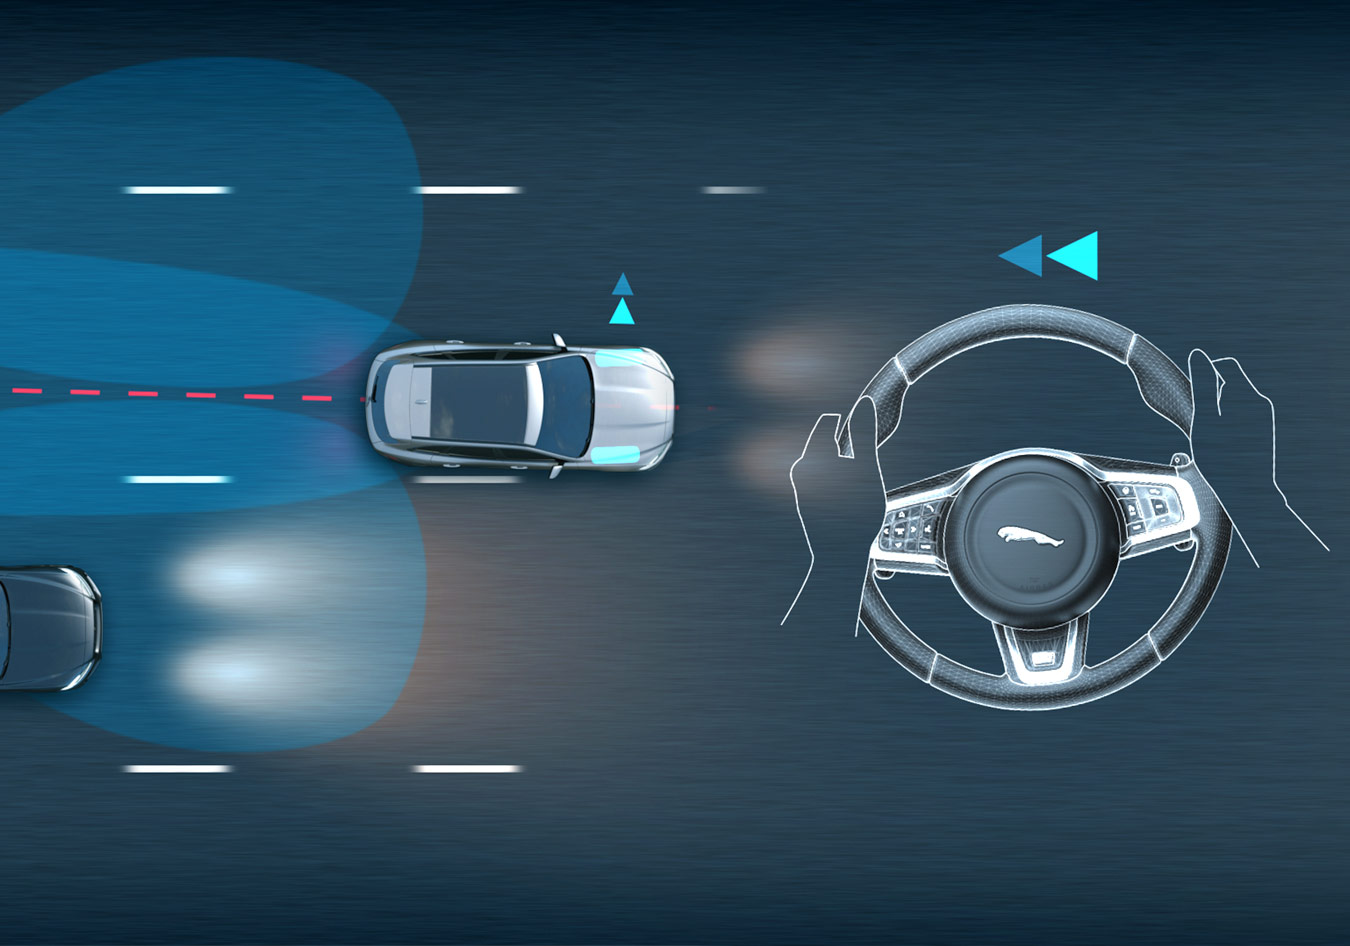 Diagram showing Jaguar INCONTROL's driver assistance features